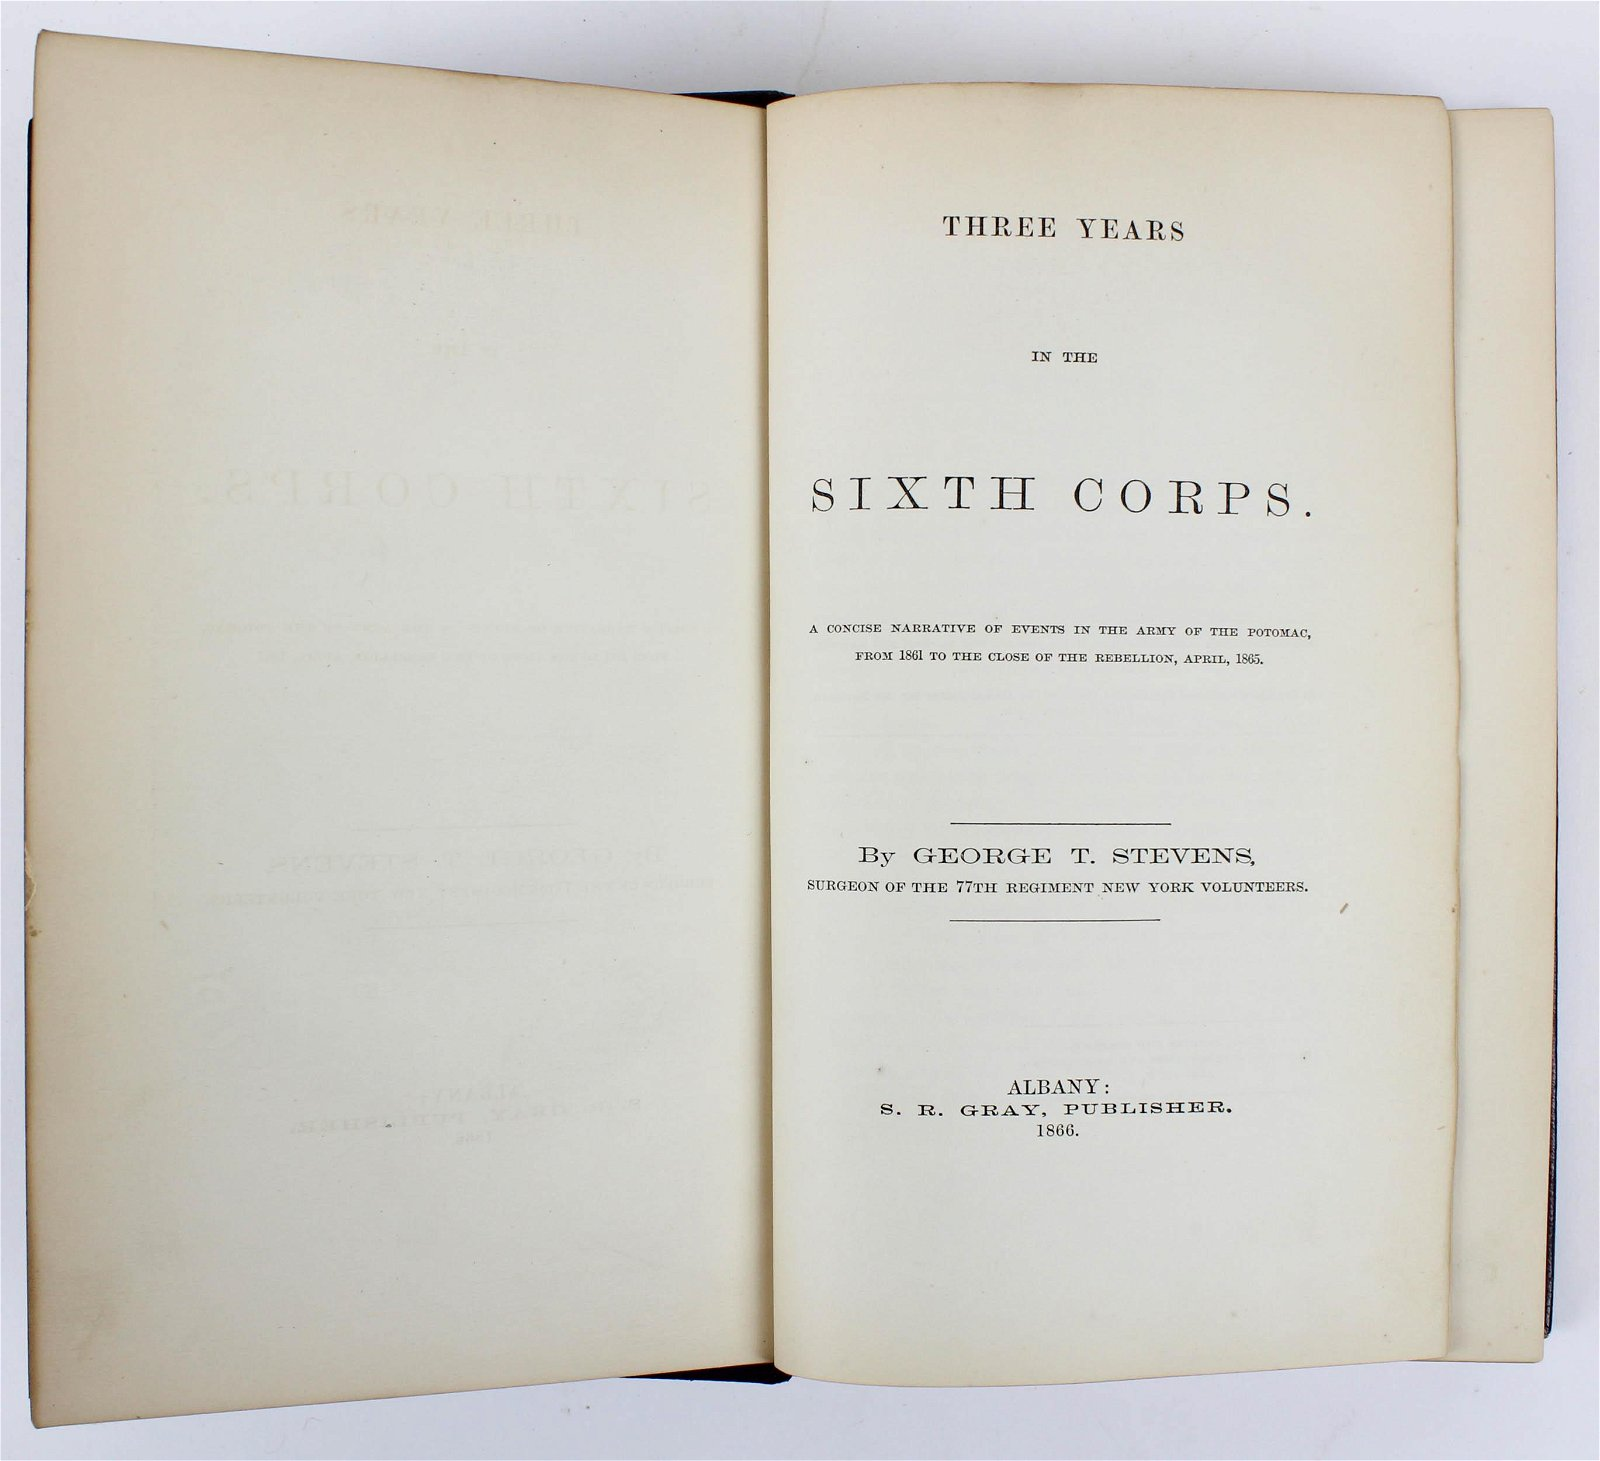 1866 Stevens Three Years in the Sixth Corps